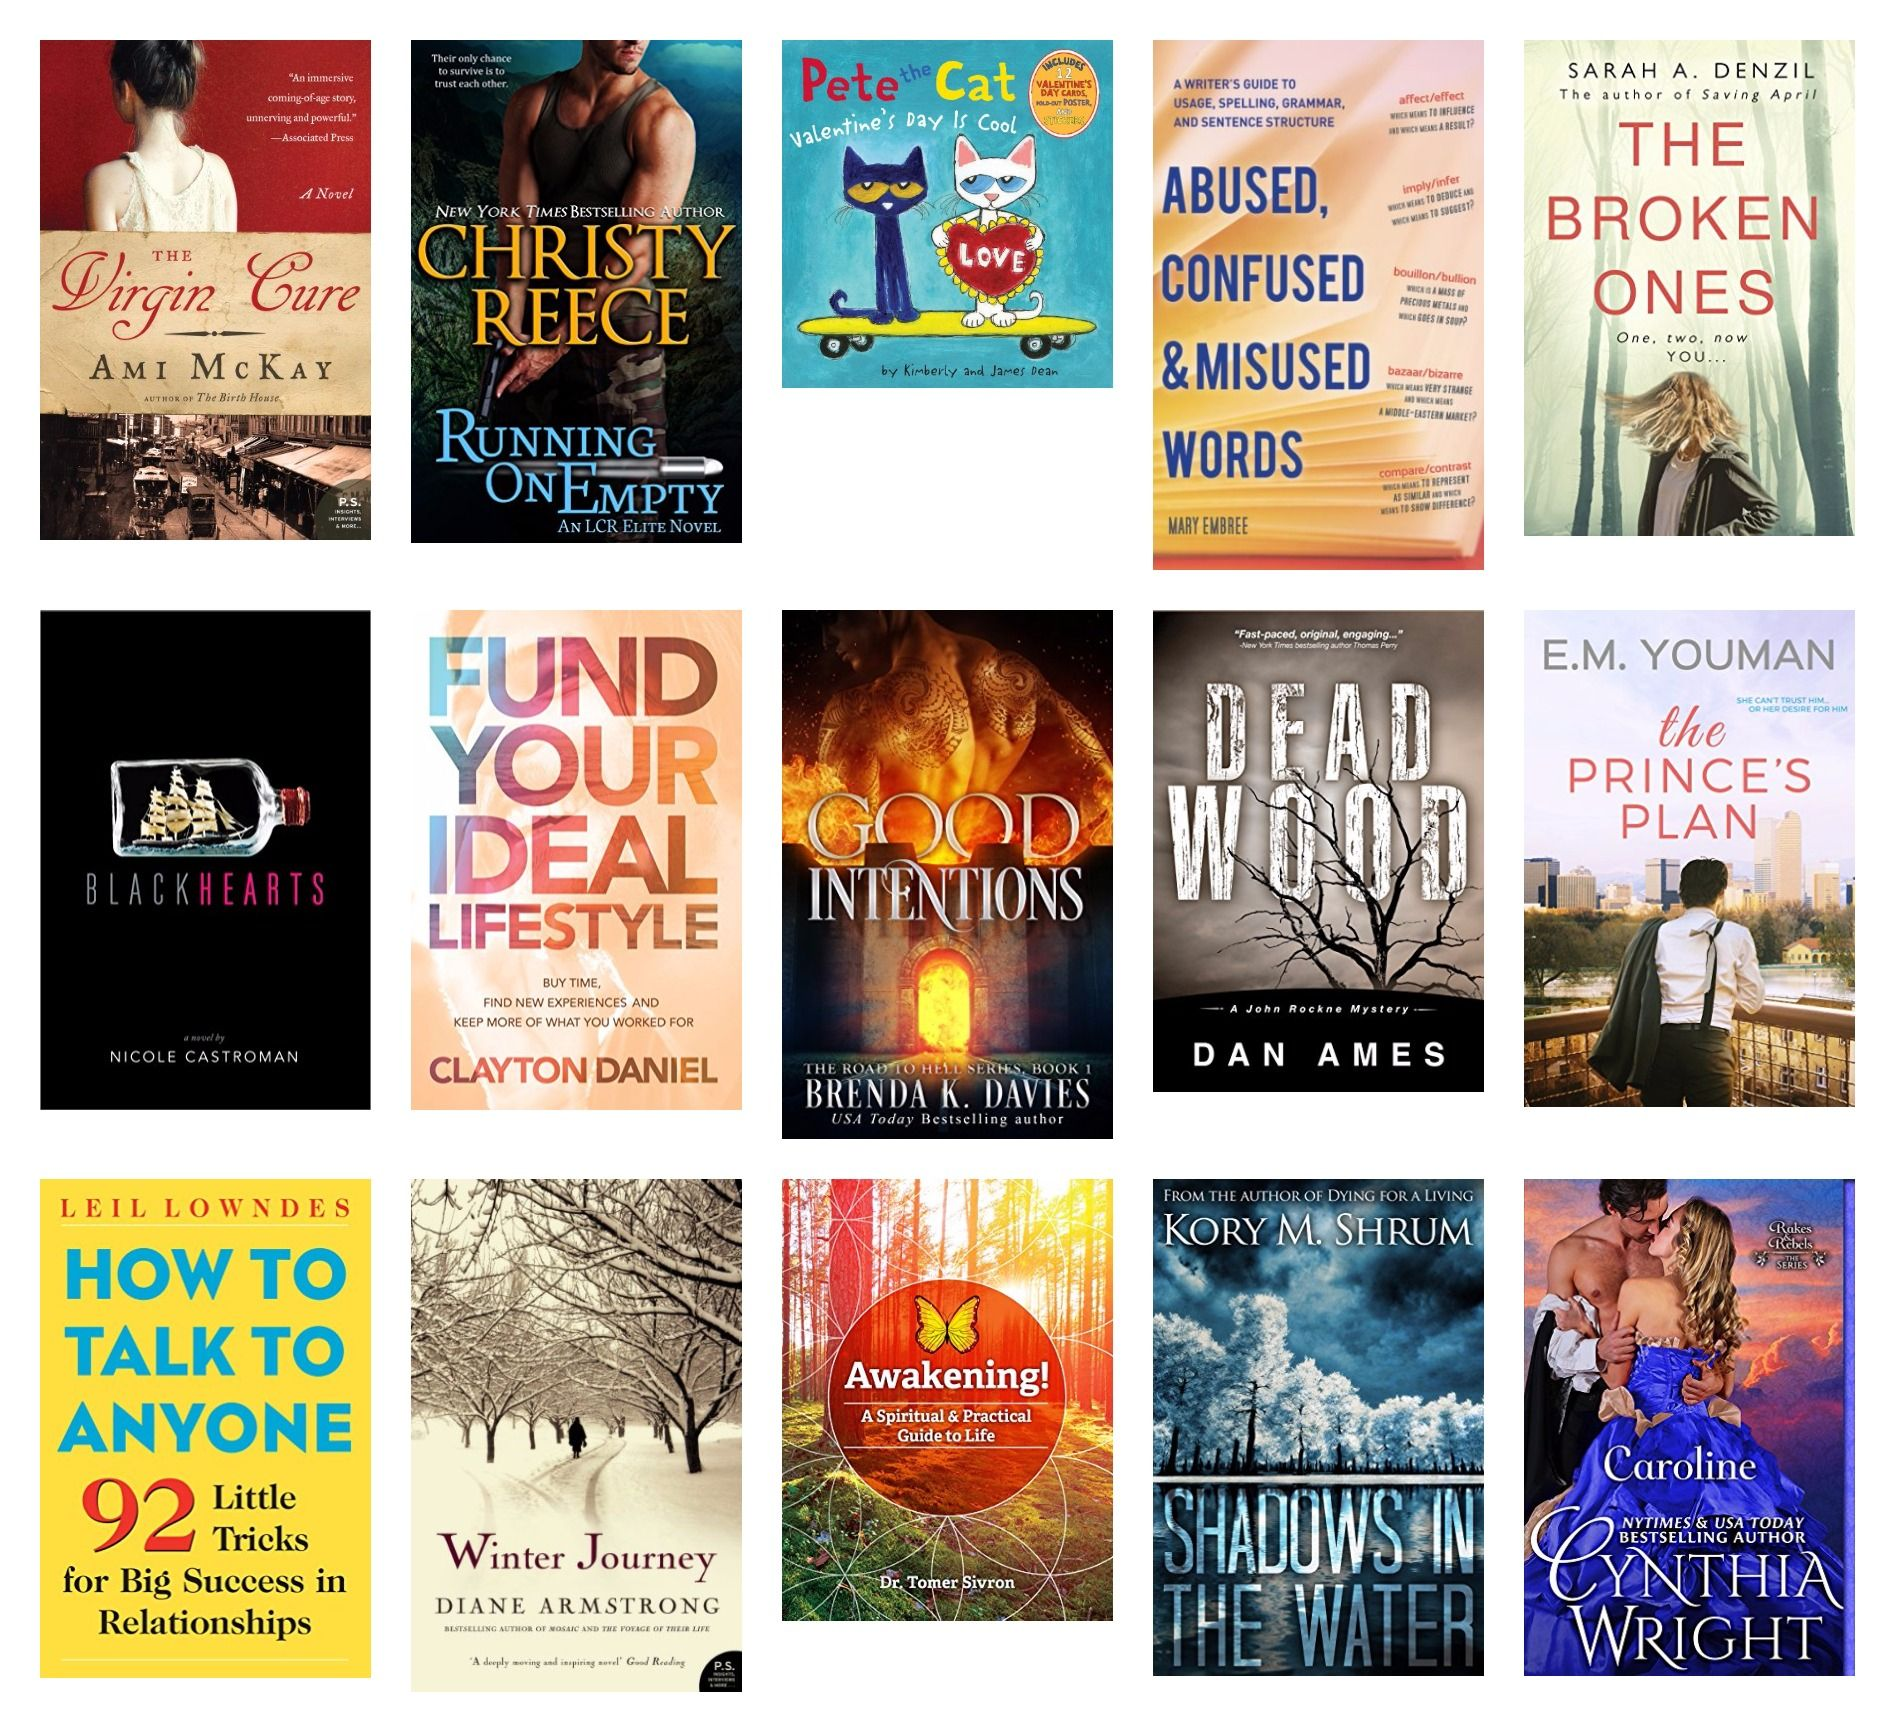 Here are your 6 FREE & 9 discount Kindle books for February 7:  https://ohfb.com/category/featured/?date=20170207